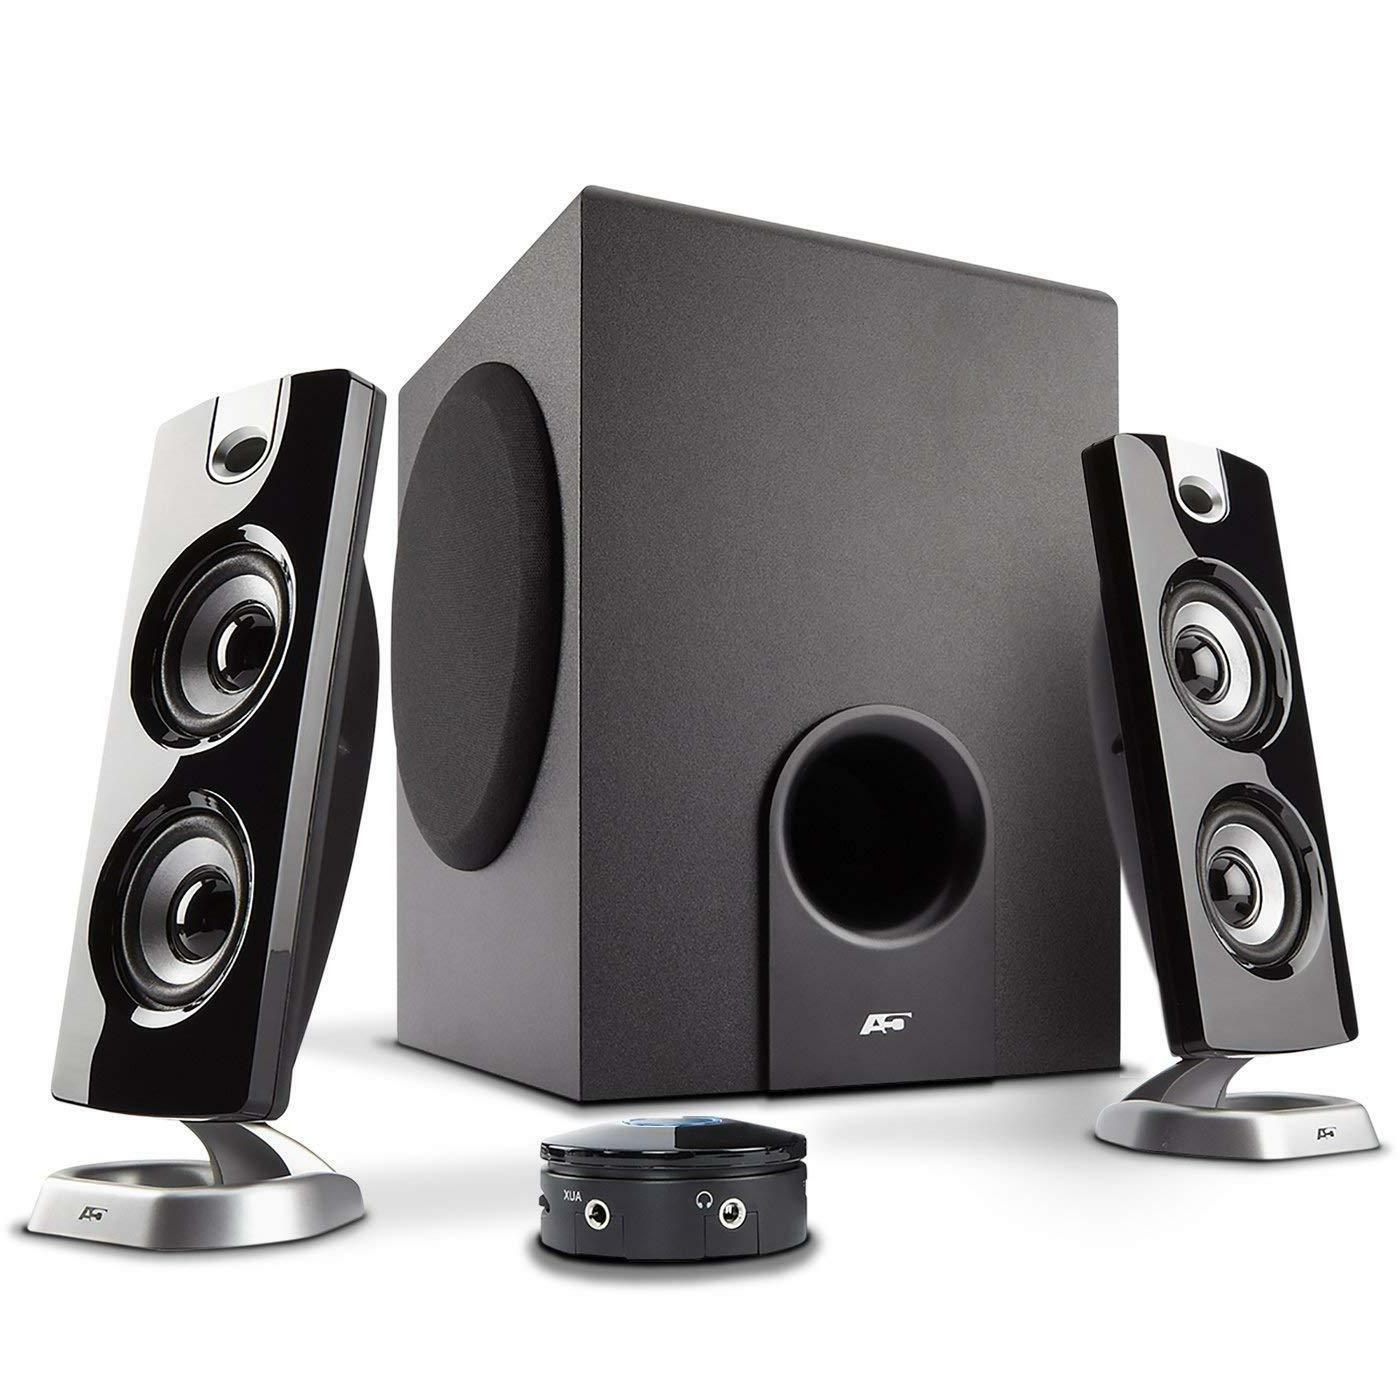 pc gaming speaker sound system with subwoofer